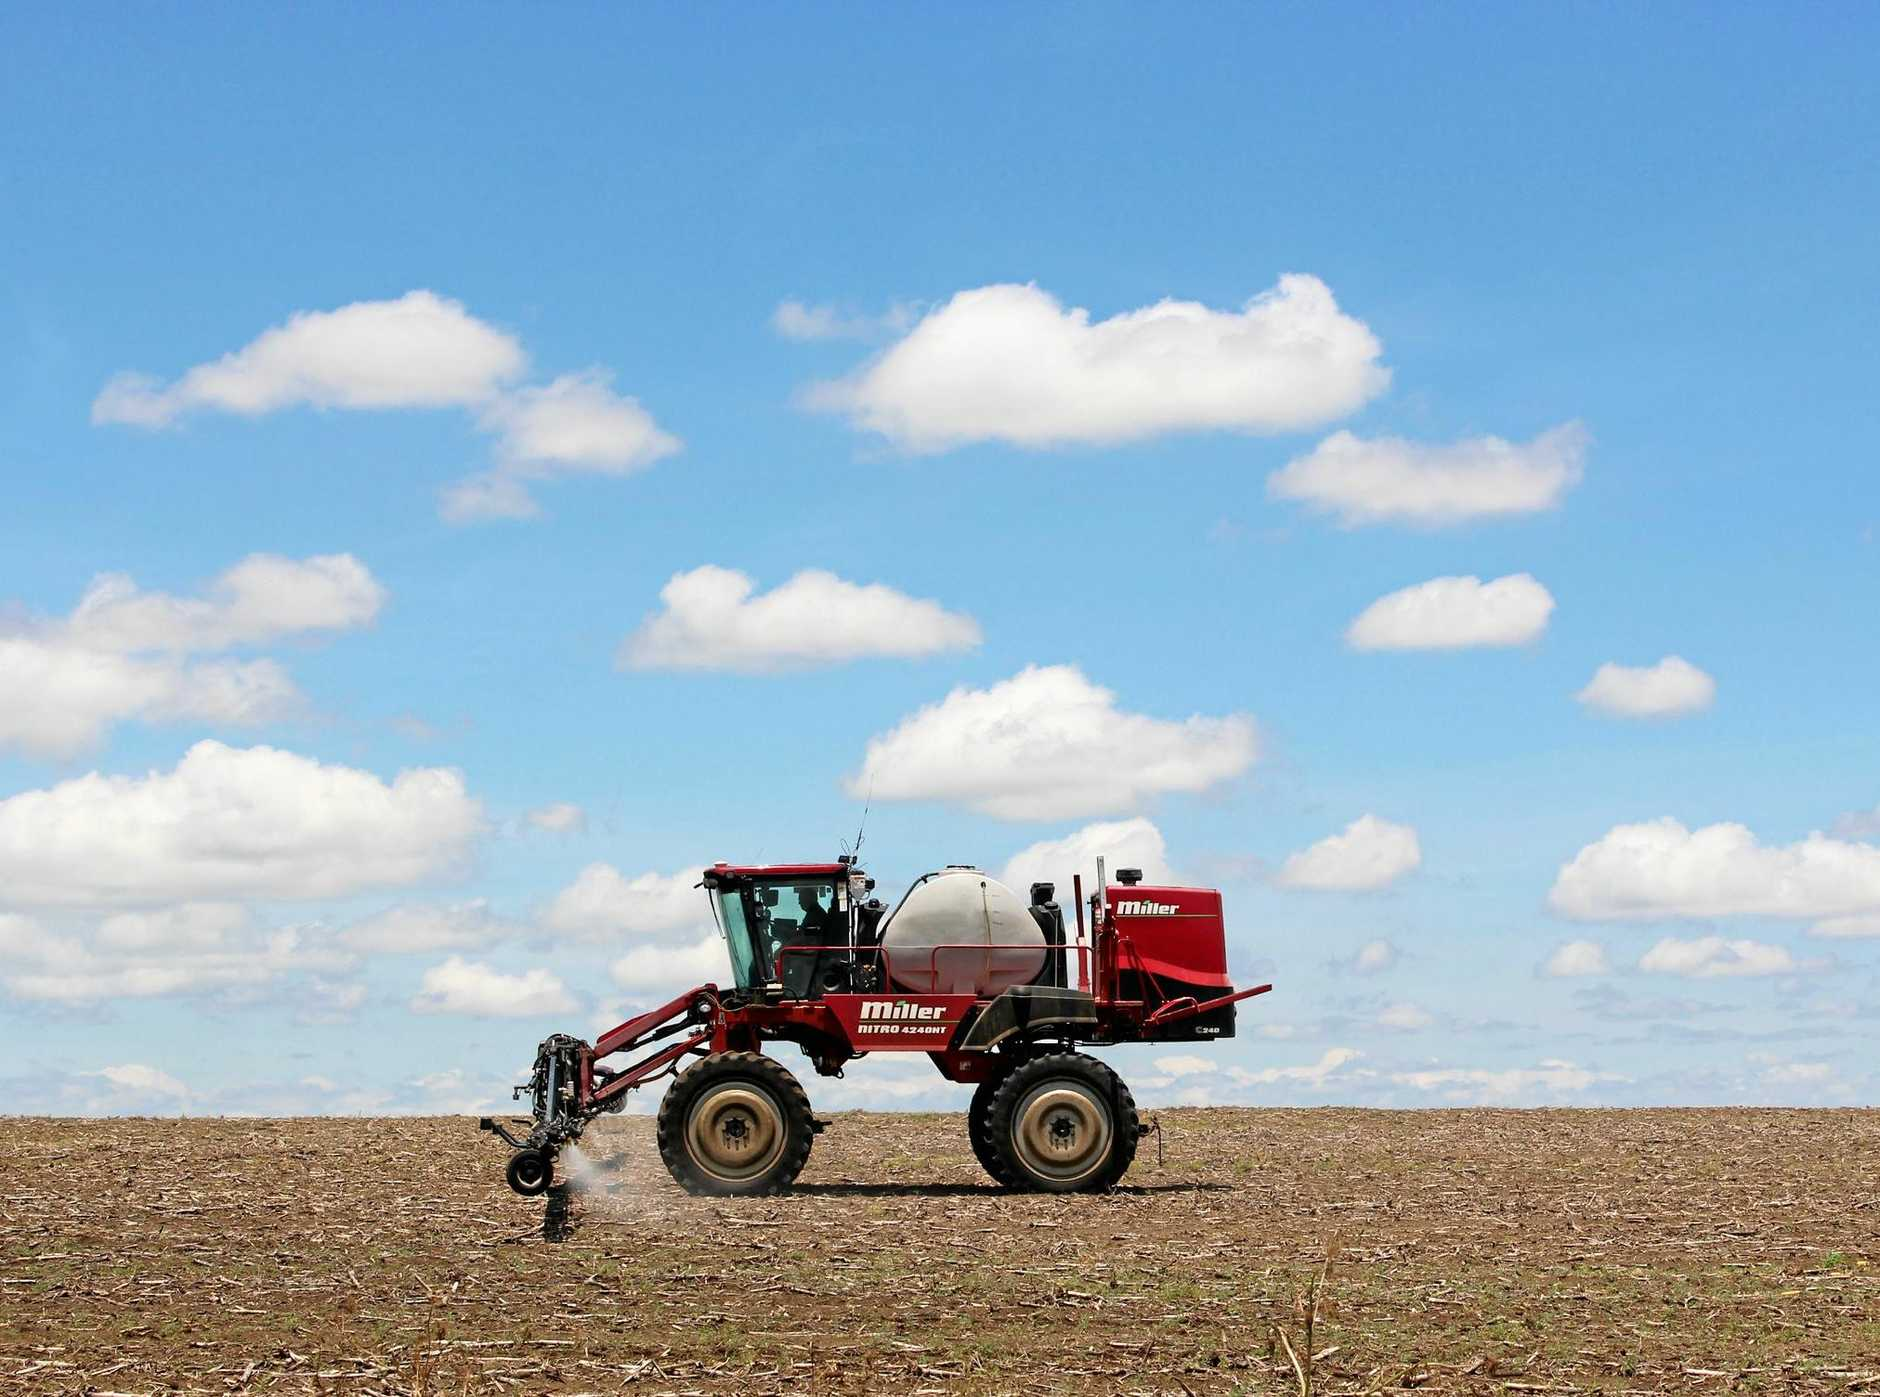 Rod Petersen of Petersen Grains spraying roundup to kill weeds before planting a field of mung beans.